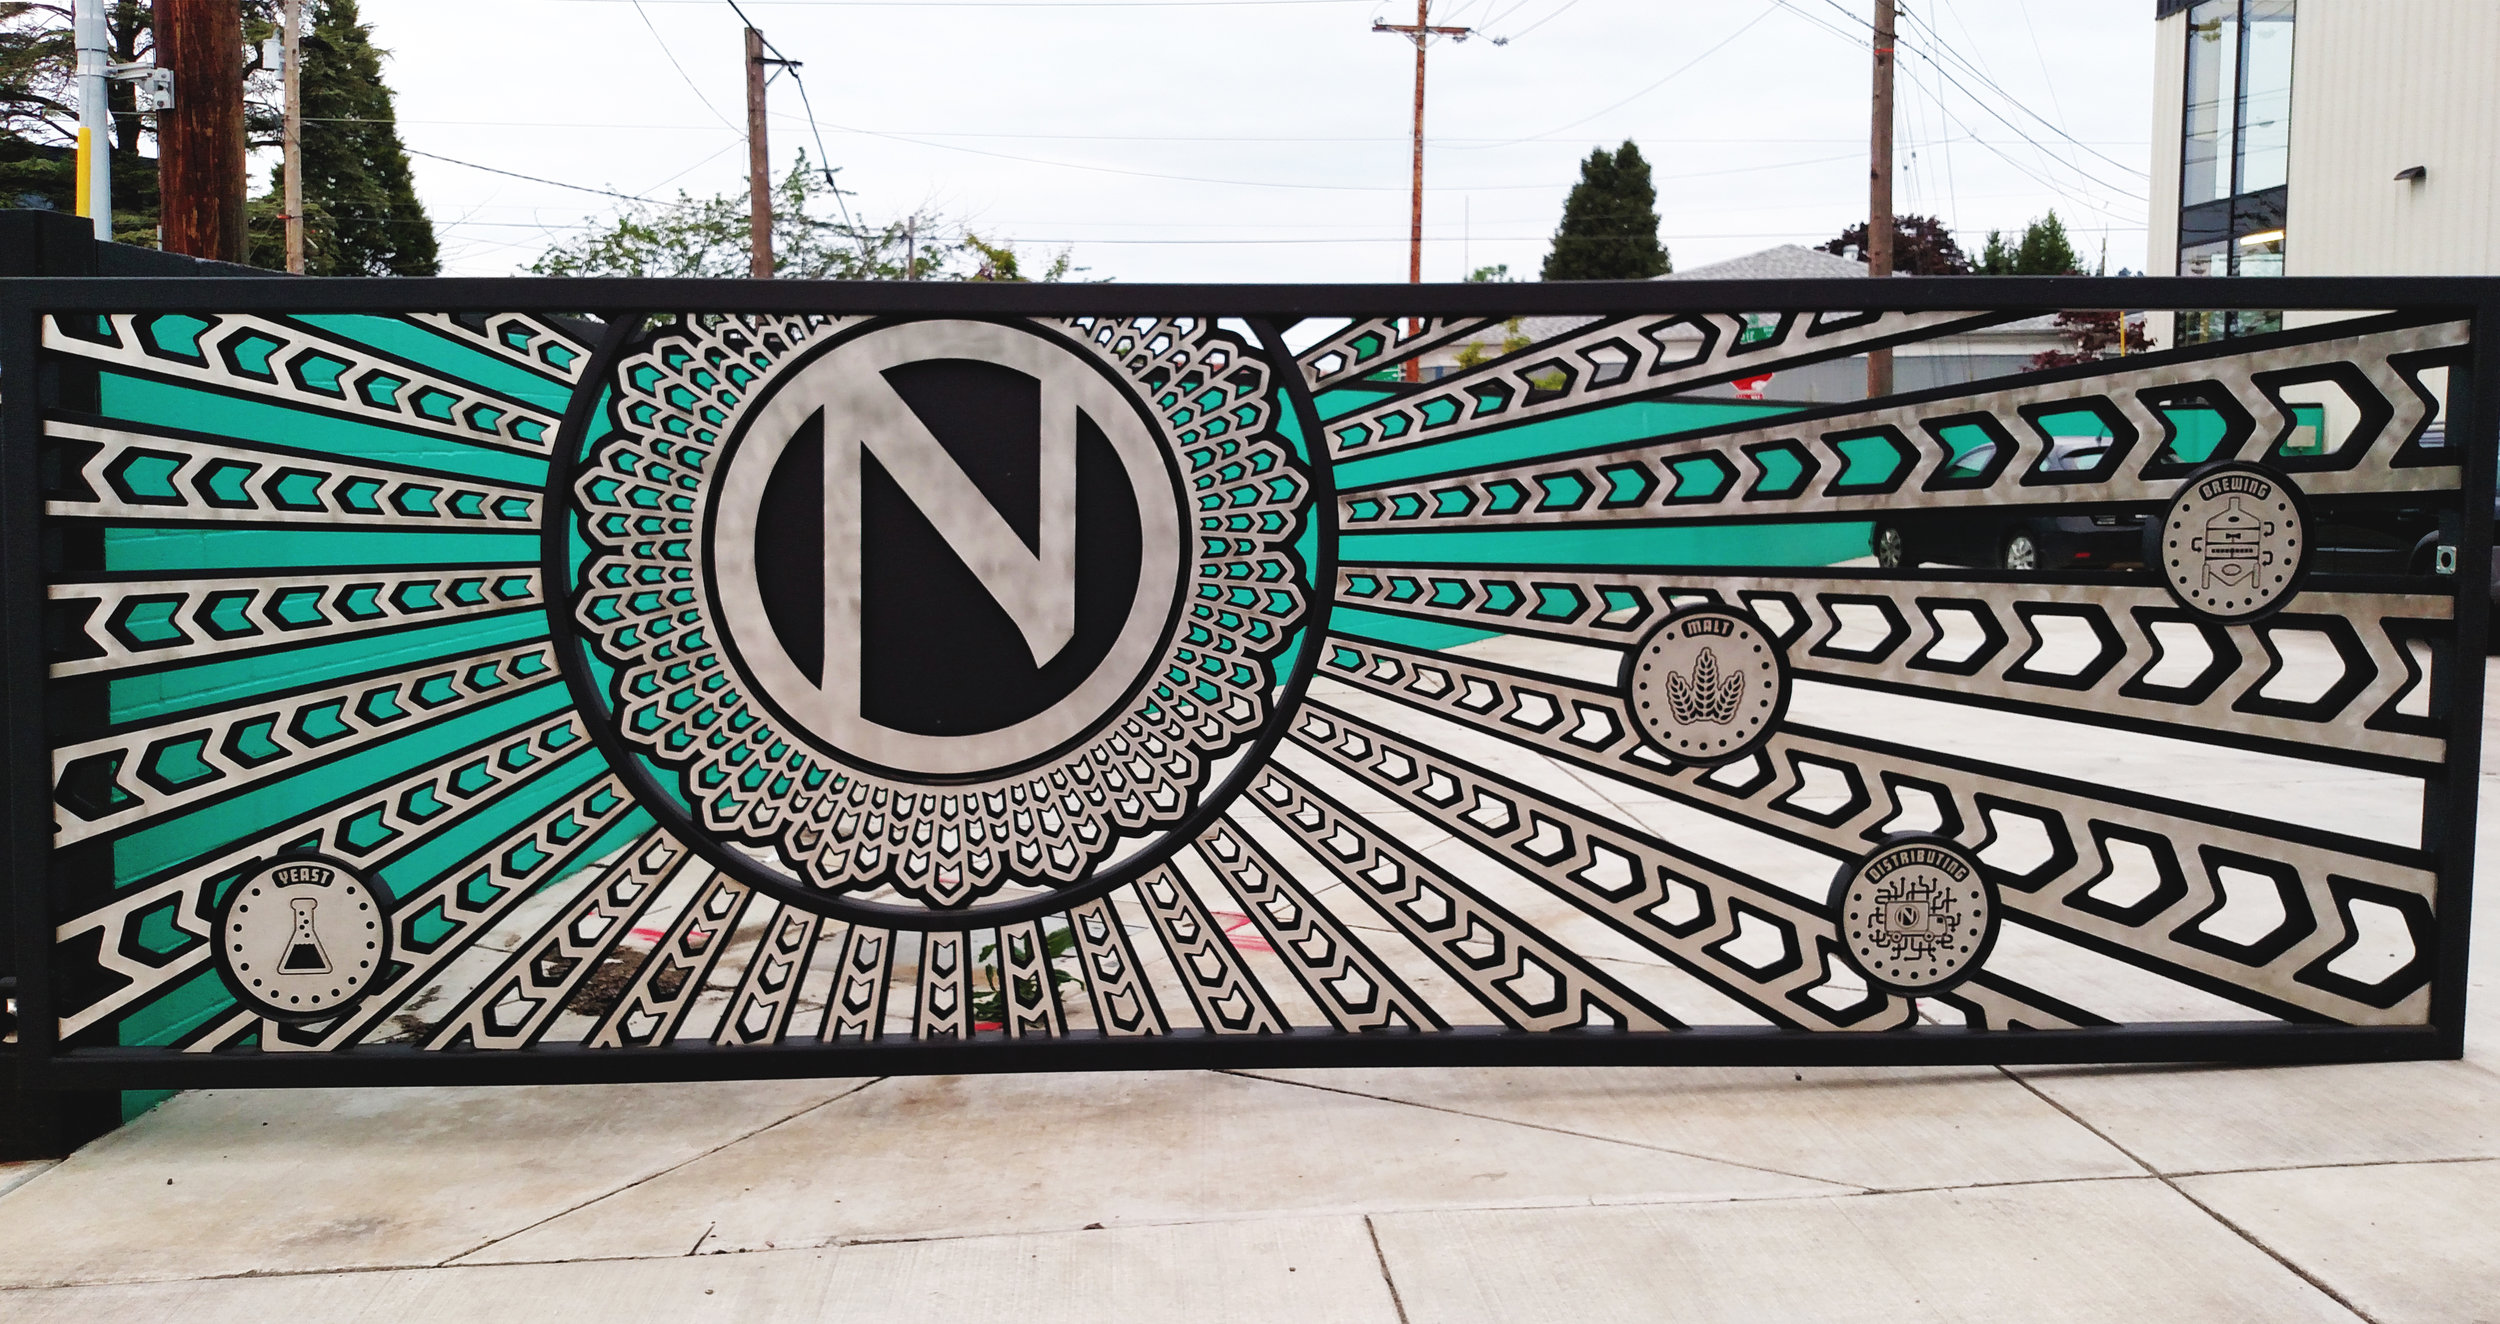 Ninkasi-Brewing-stainless-steel-laser-cut-triptych-gate